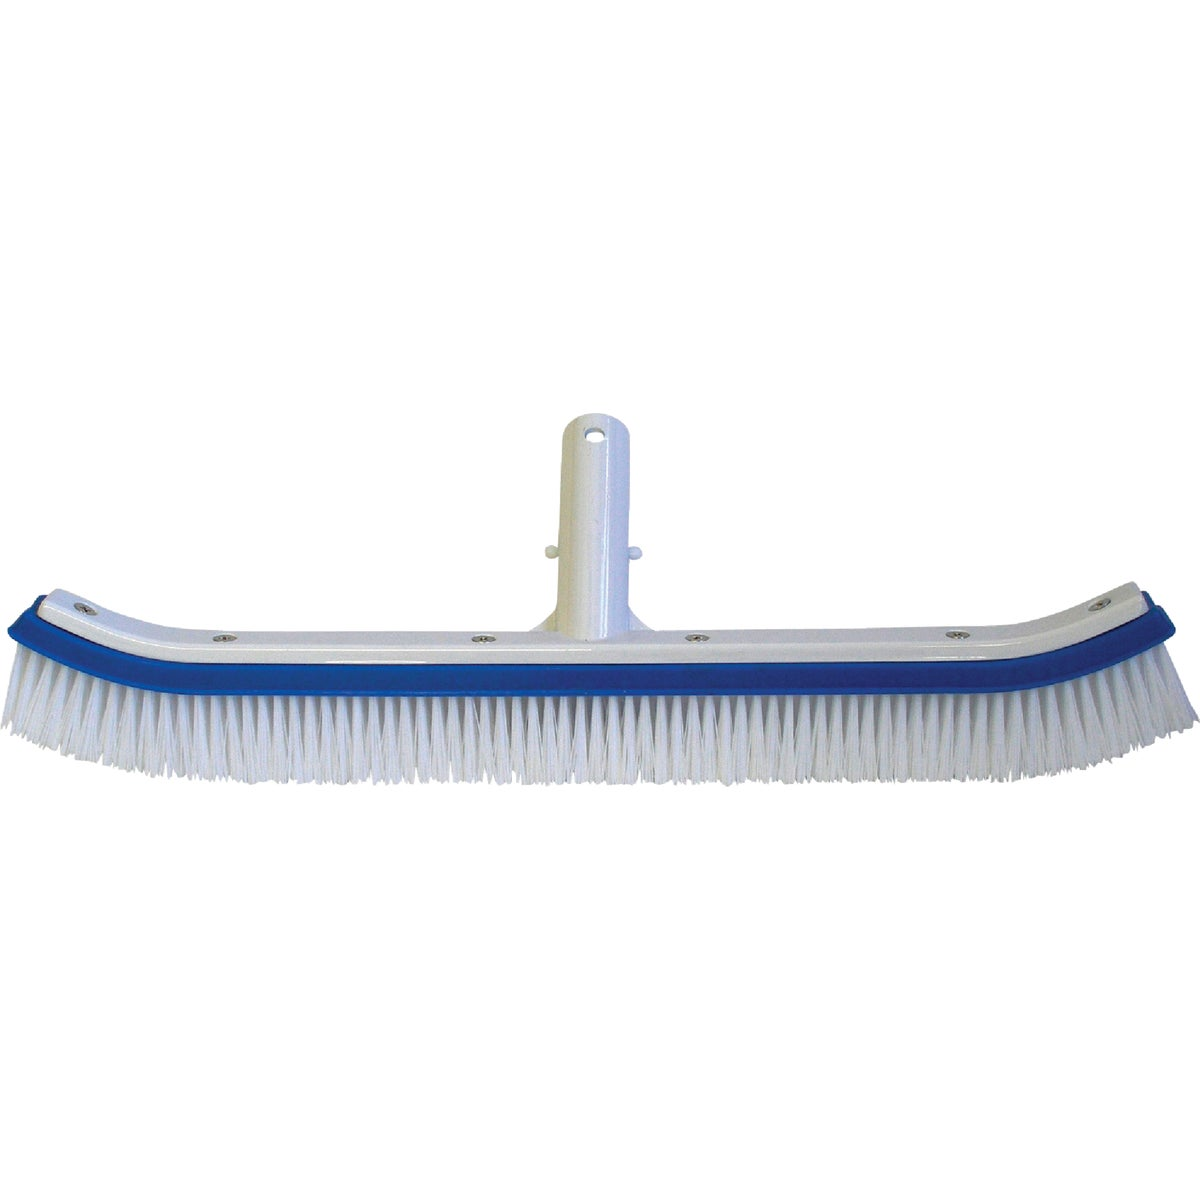 "18"" CURVED WALL BRUSH - 70-262 by Jed Pool"